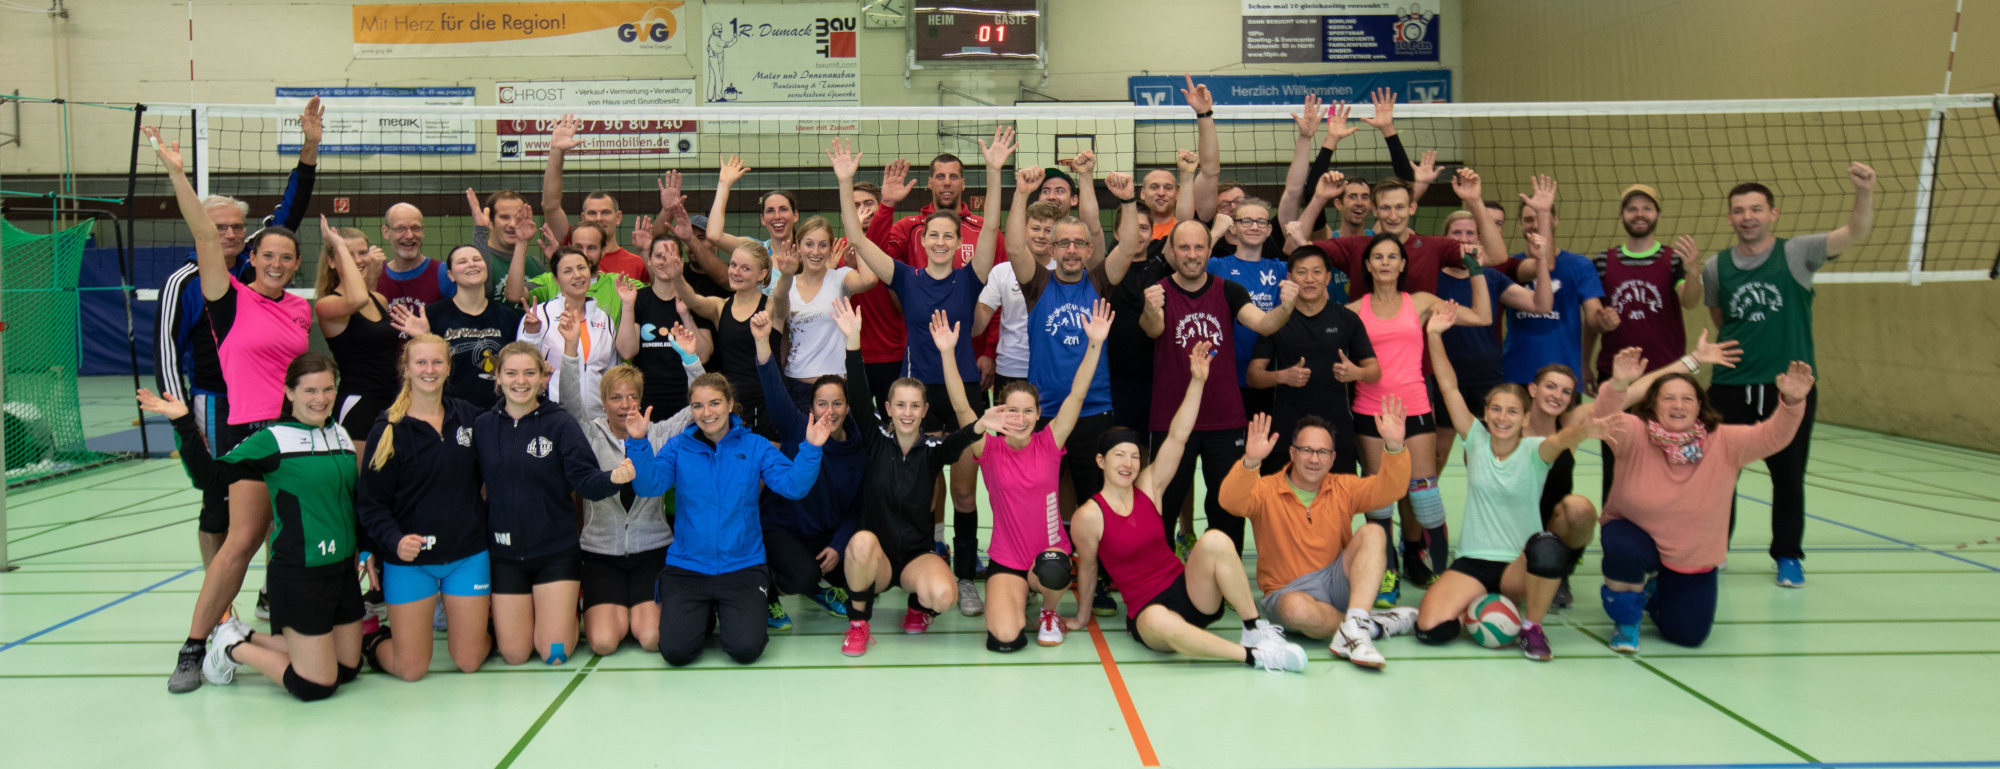 Das Gruppenfoto mit 41 Volleyballern vom 1. Volleyballfreak Trainingslager 2019.